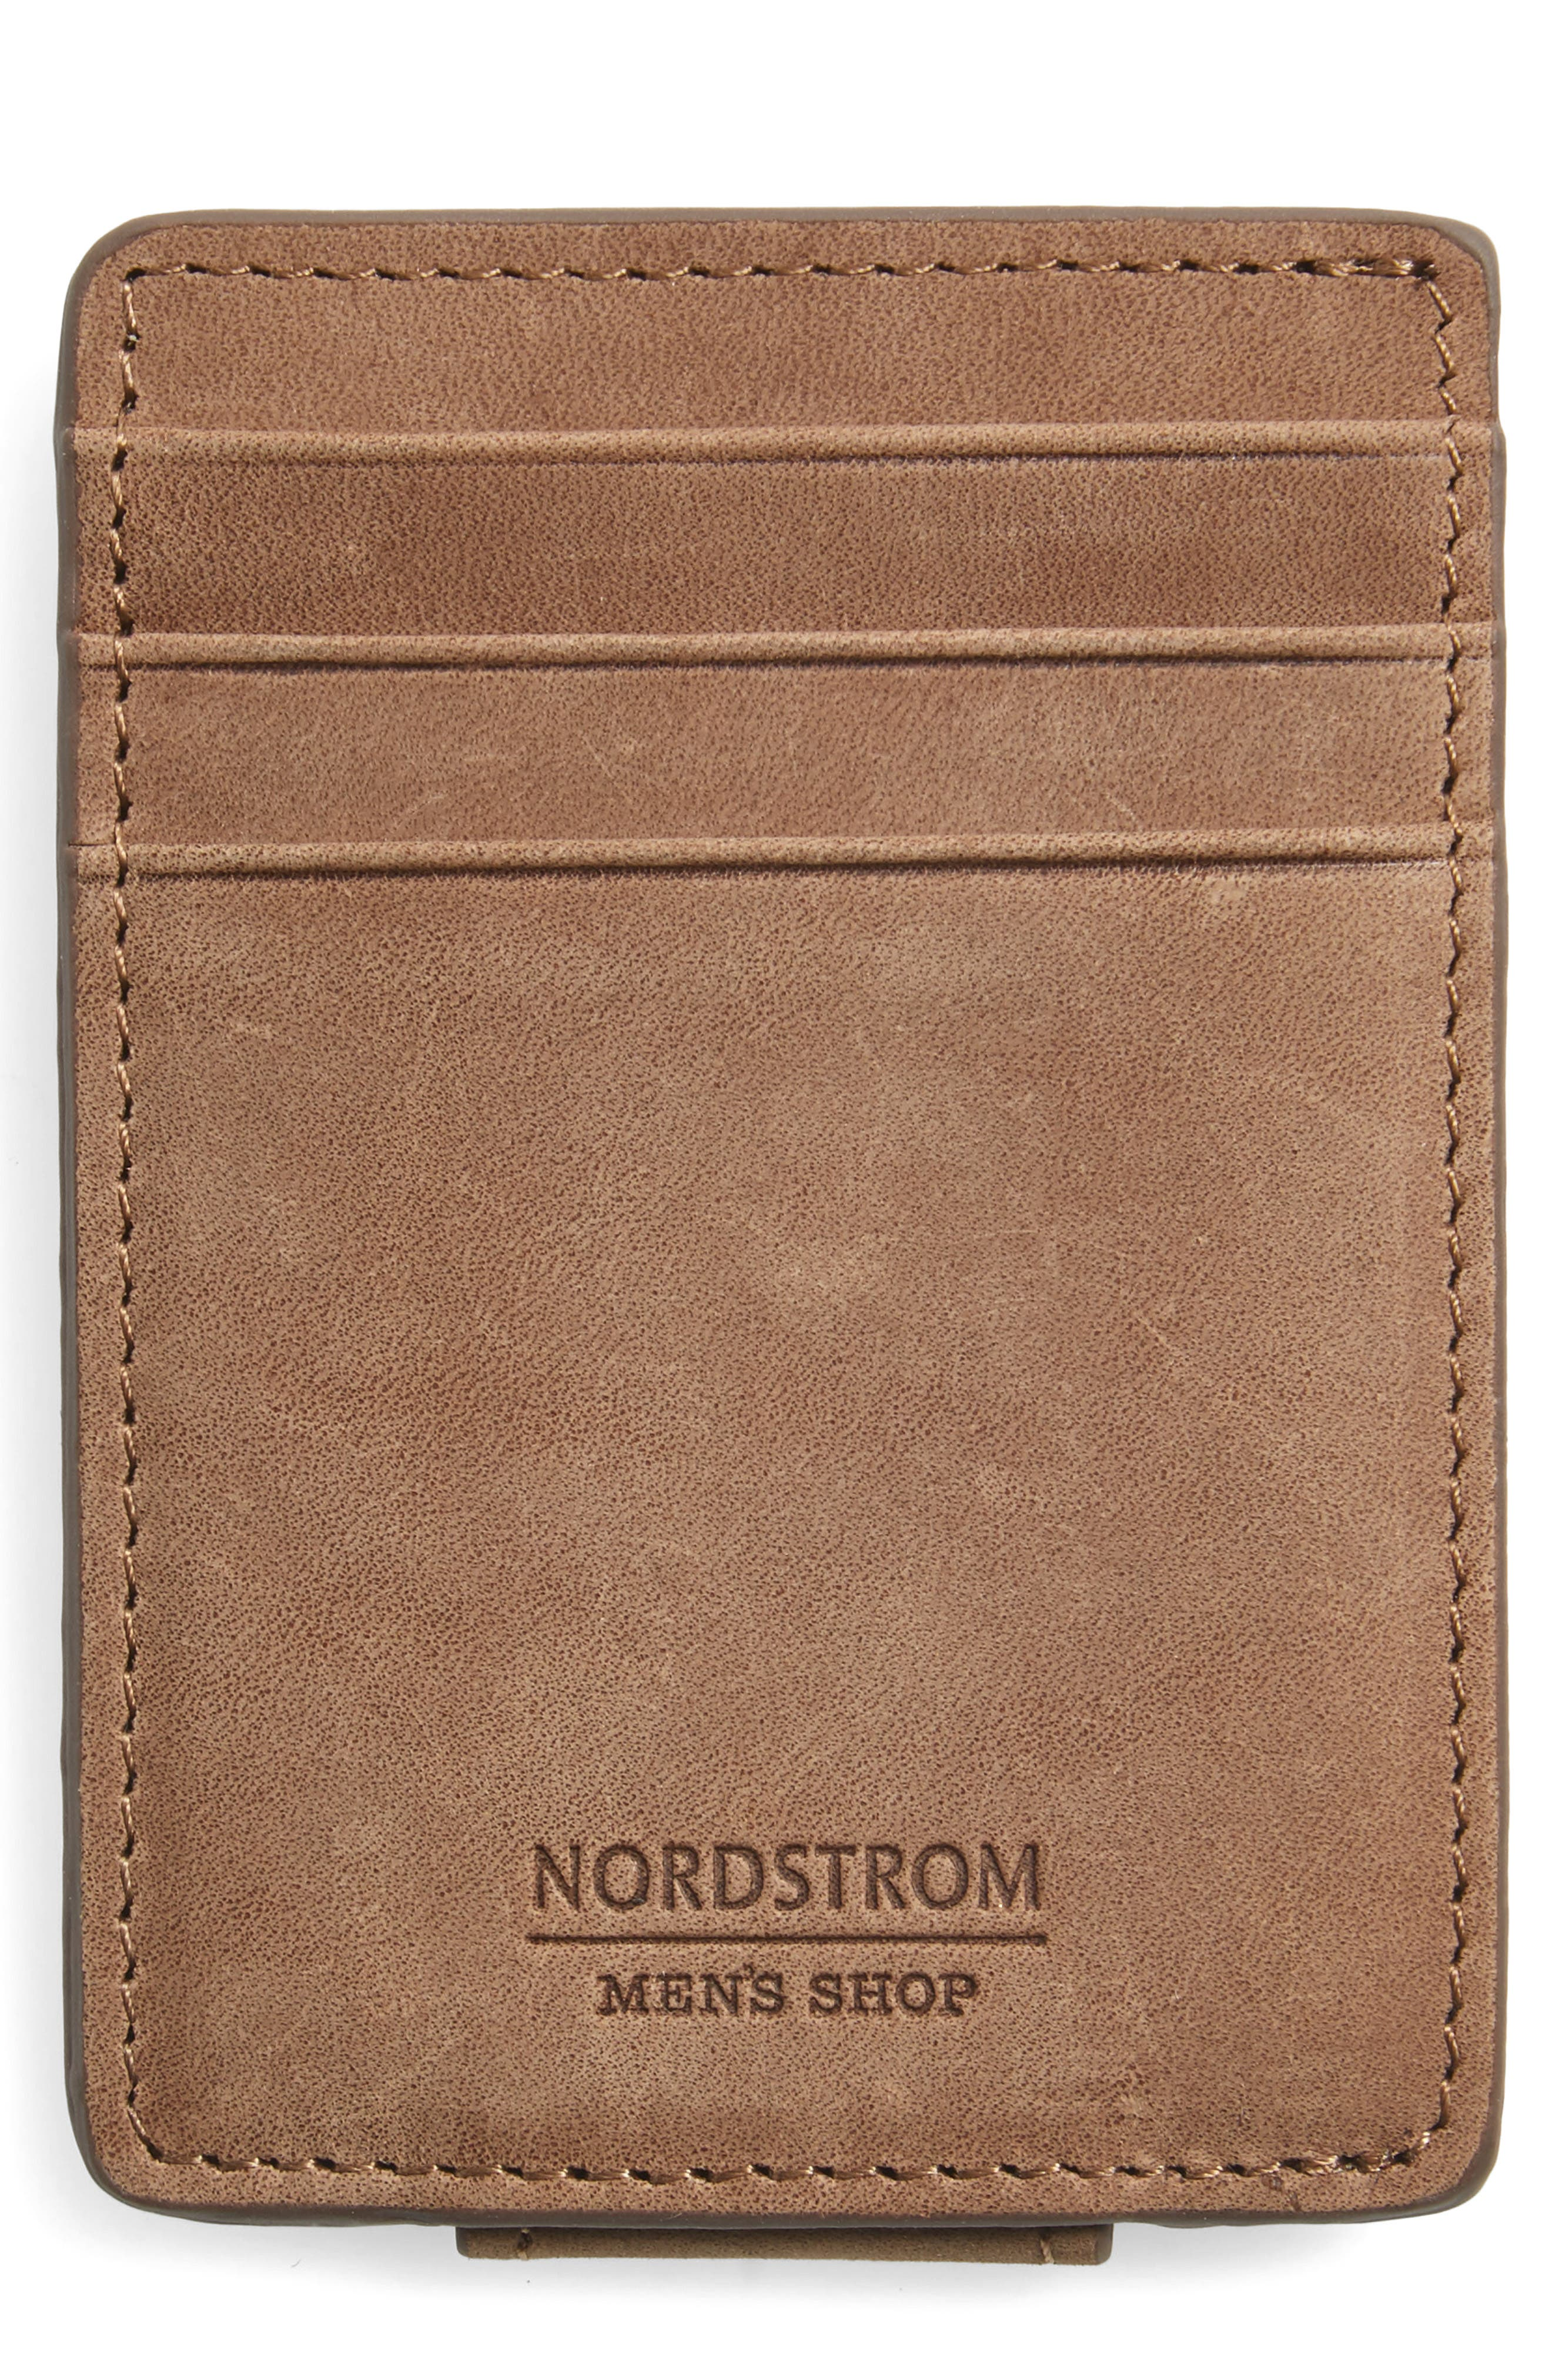 nordstrom case Free shipping free returns all the time shop online for shoes, clothing, jewelry, dresses, makeup and more from top brands make returns in store or by mail.